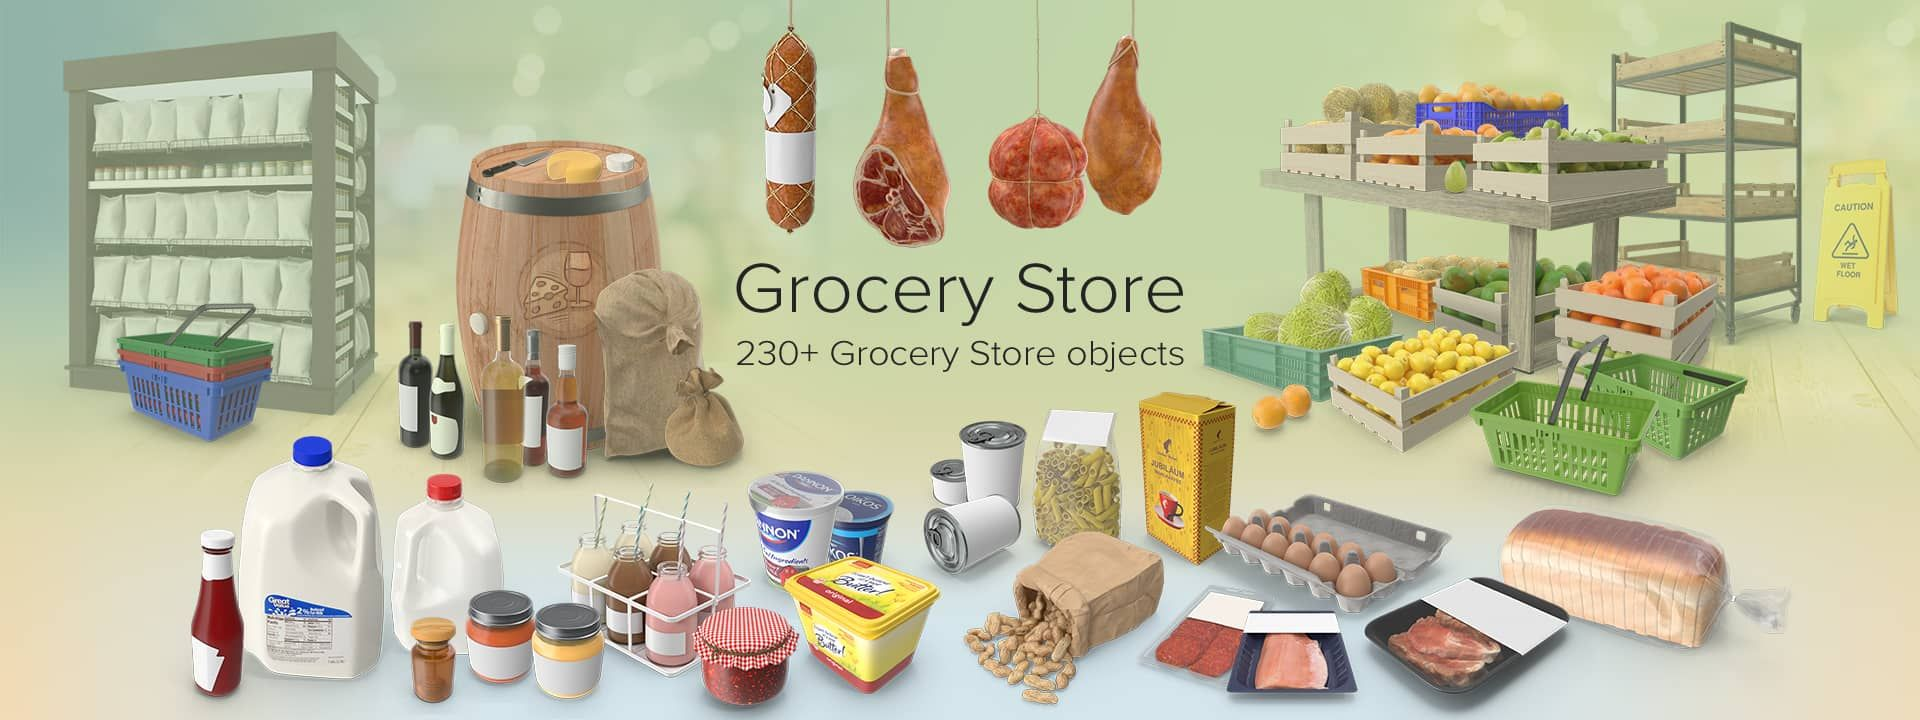 Grocery Store Collection Png Images Psds For Download Pixelsquid Grocery Grocery Store Png Images